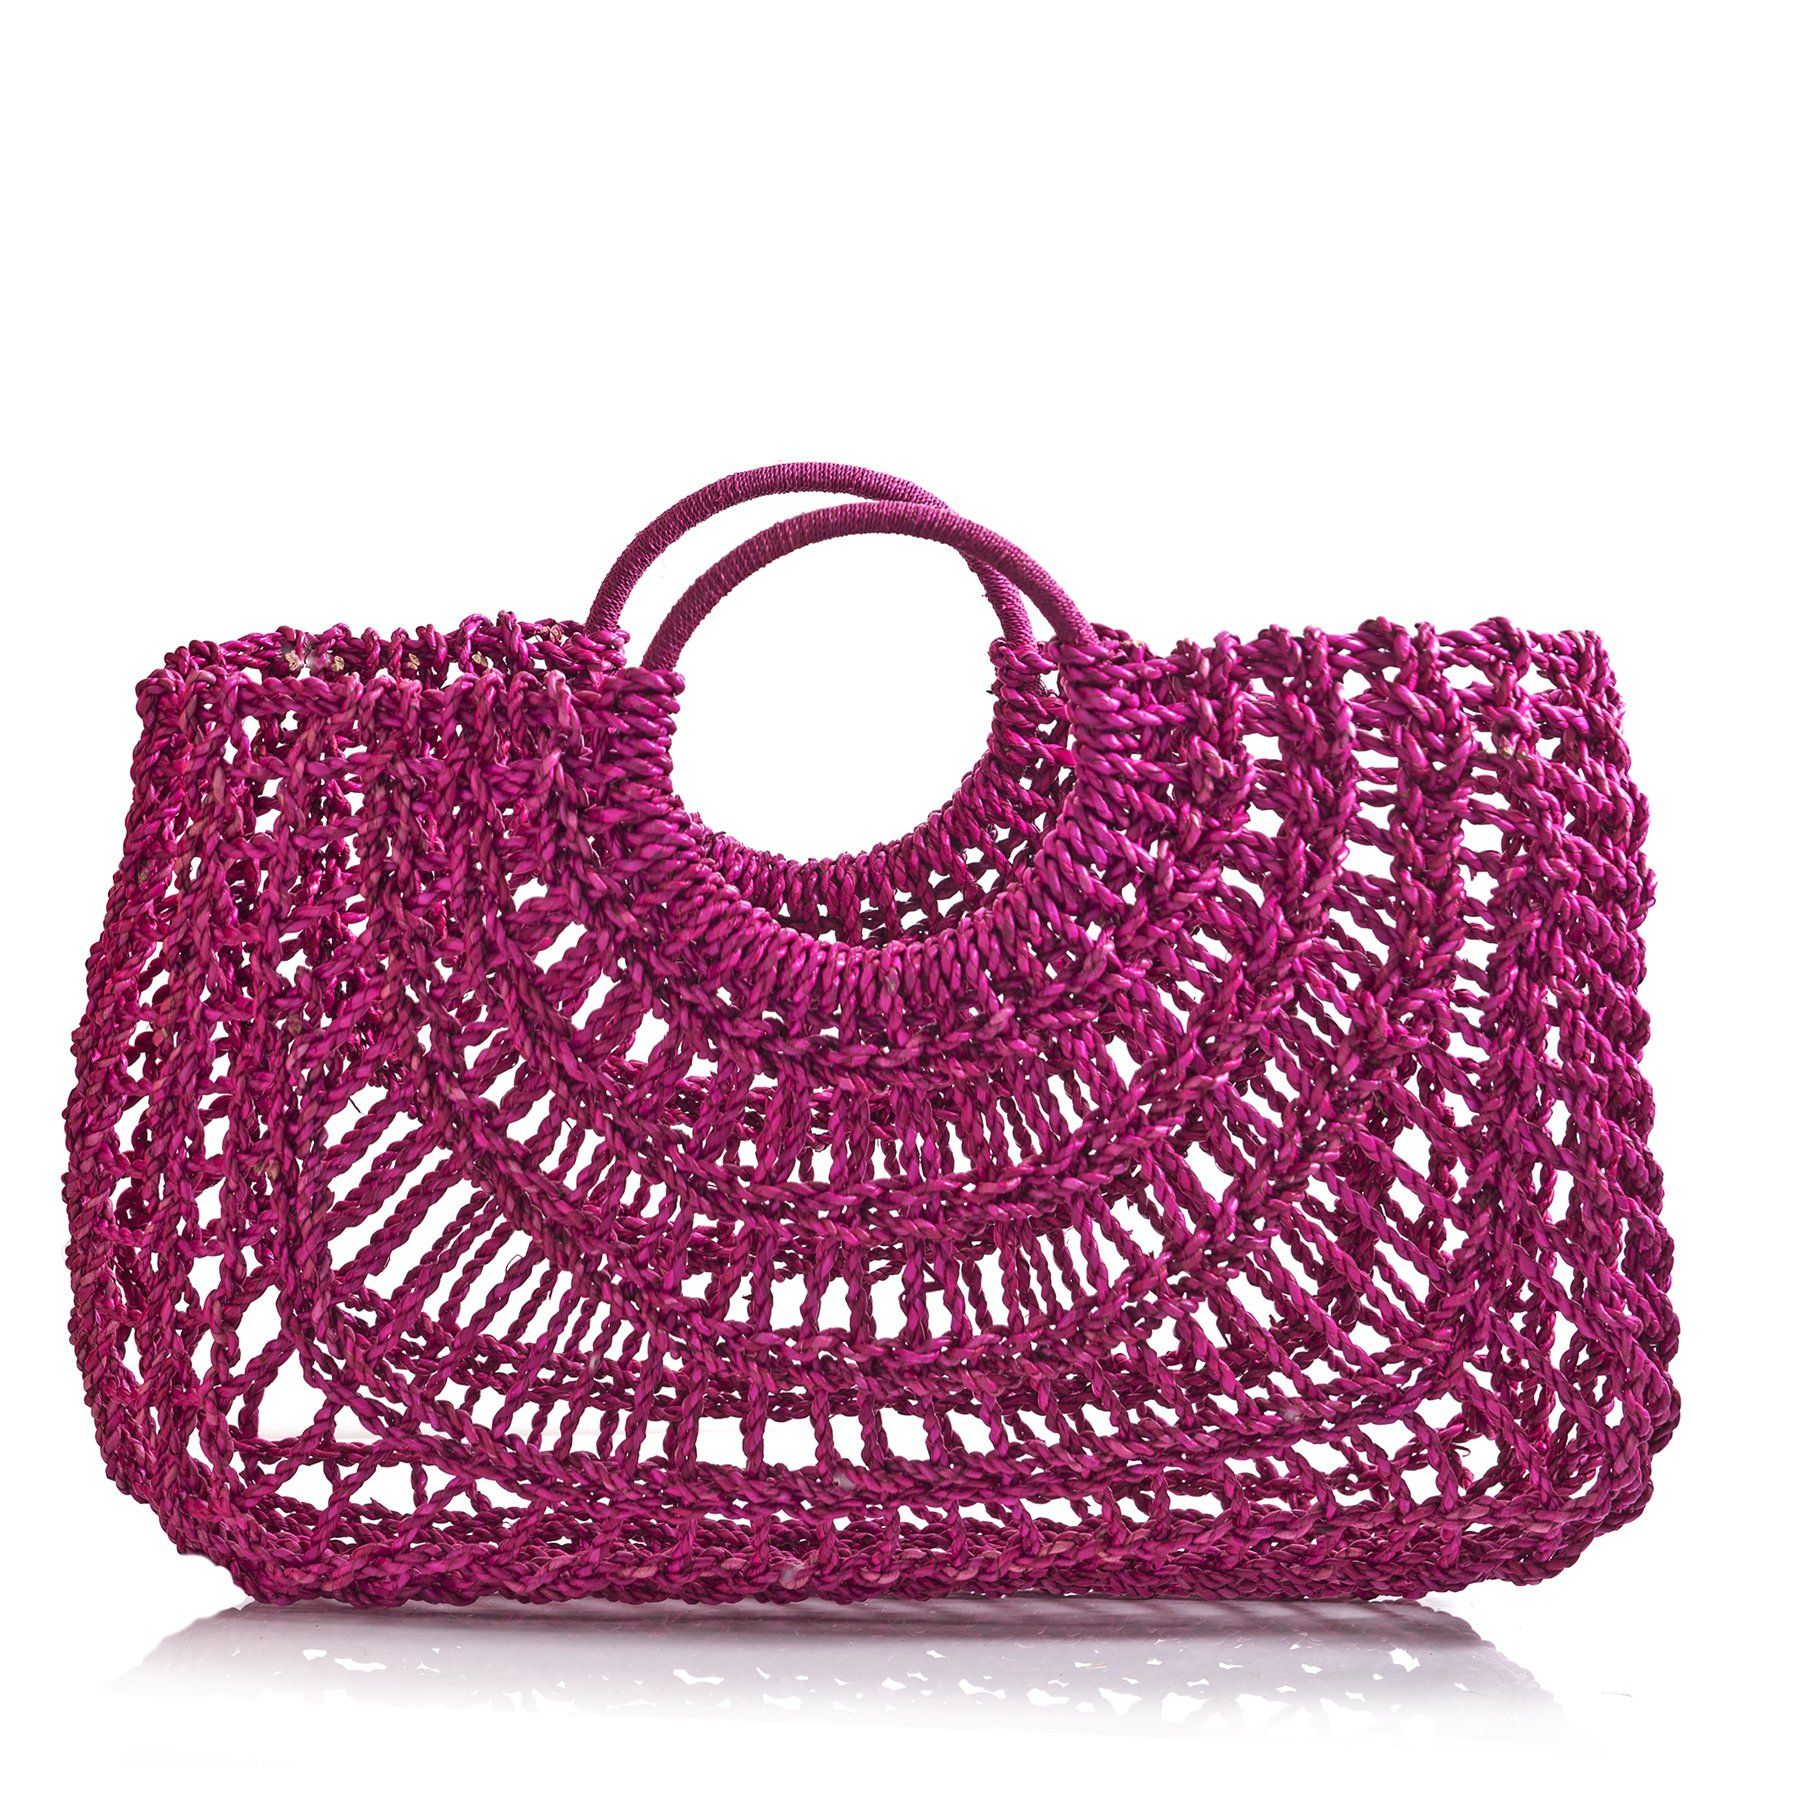 Audrey bag - pink